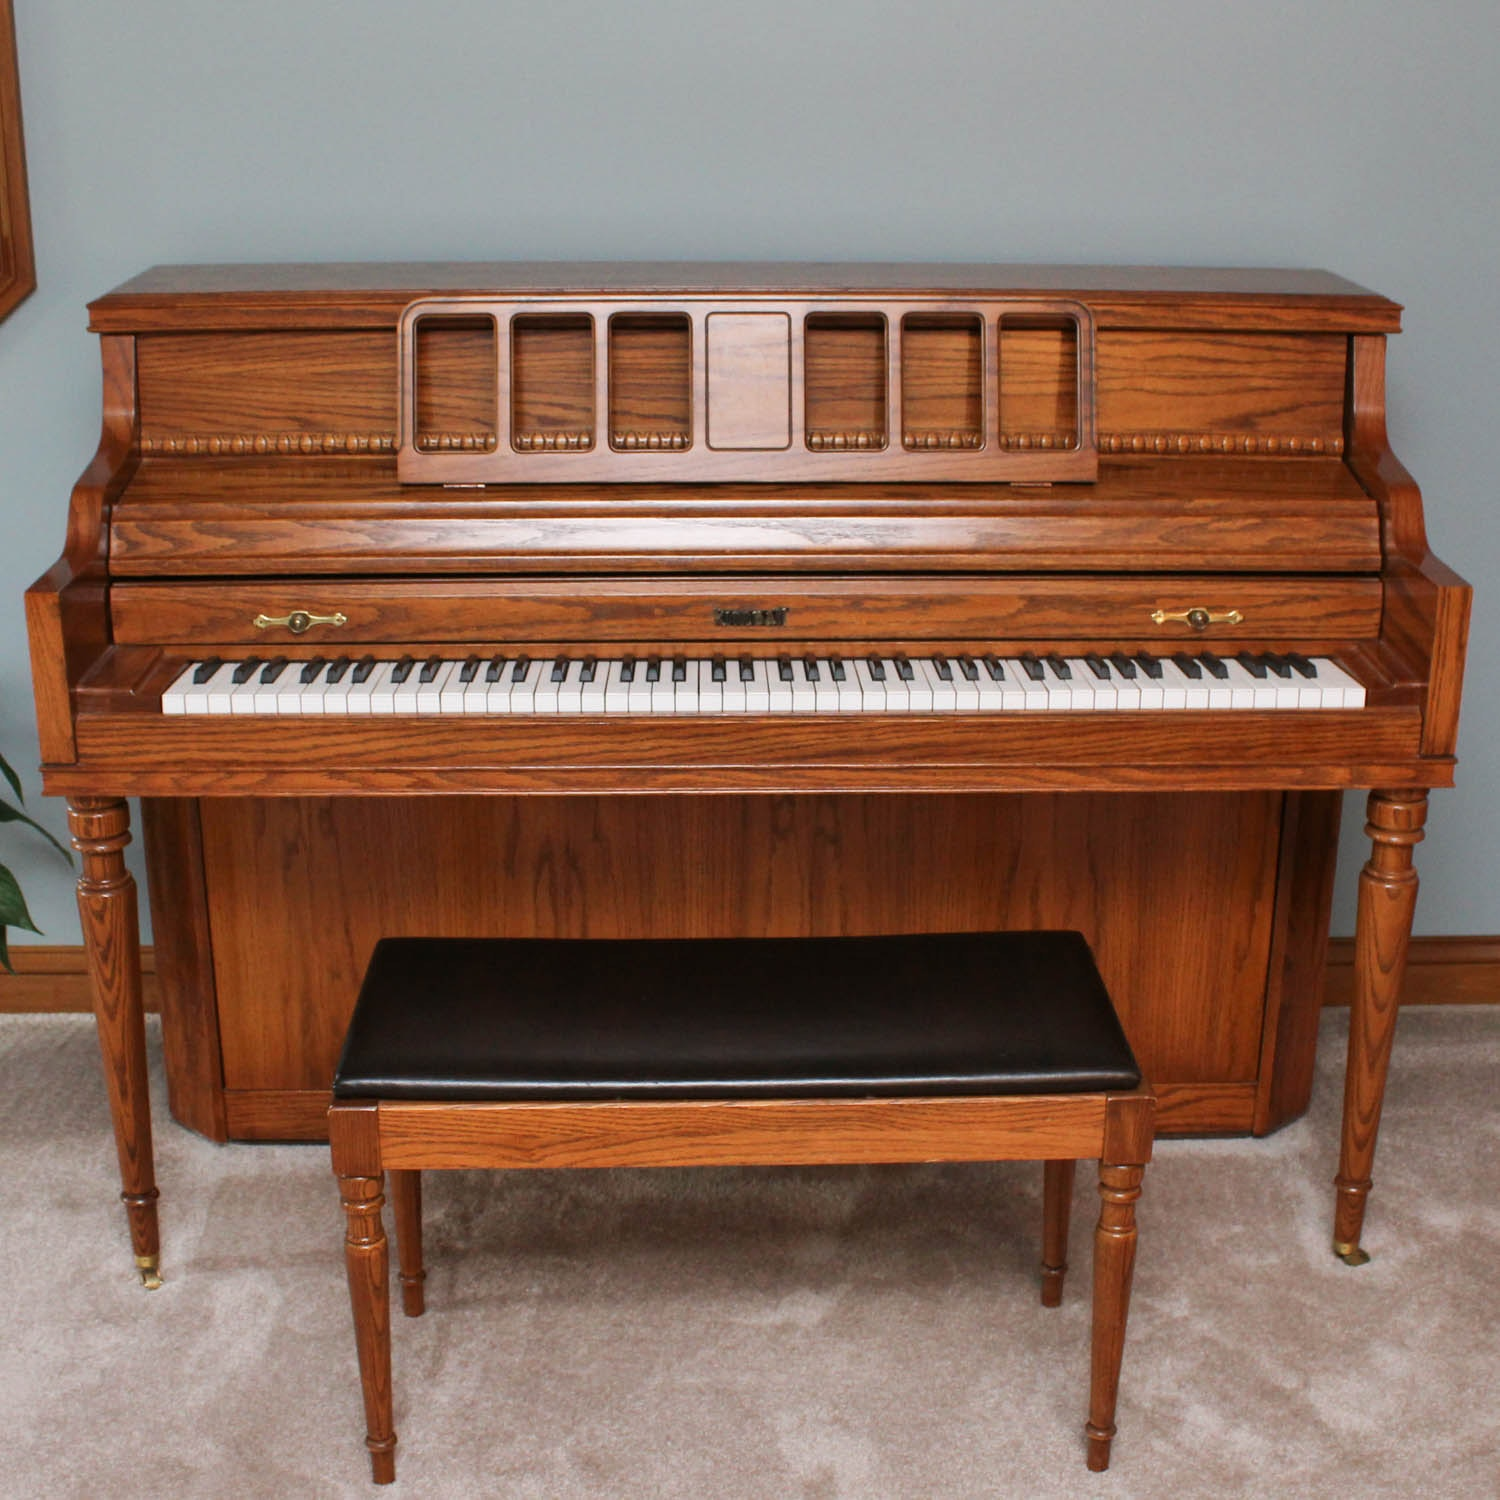 Kimball Upright Console Piano and Bench